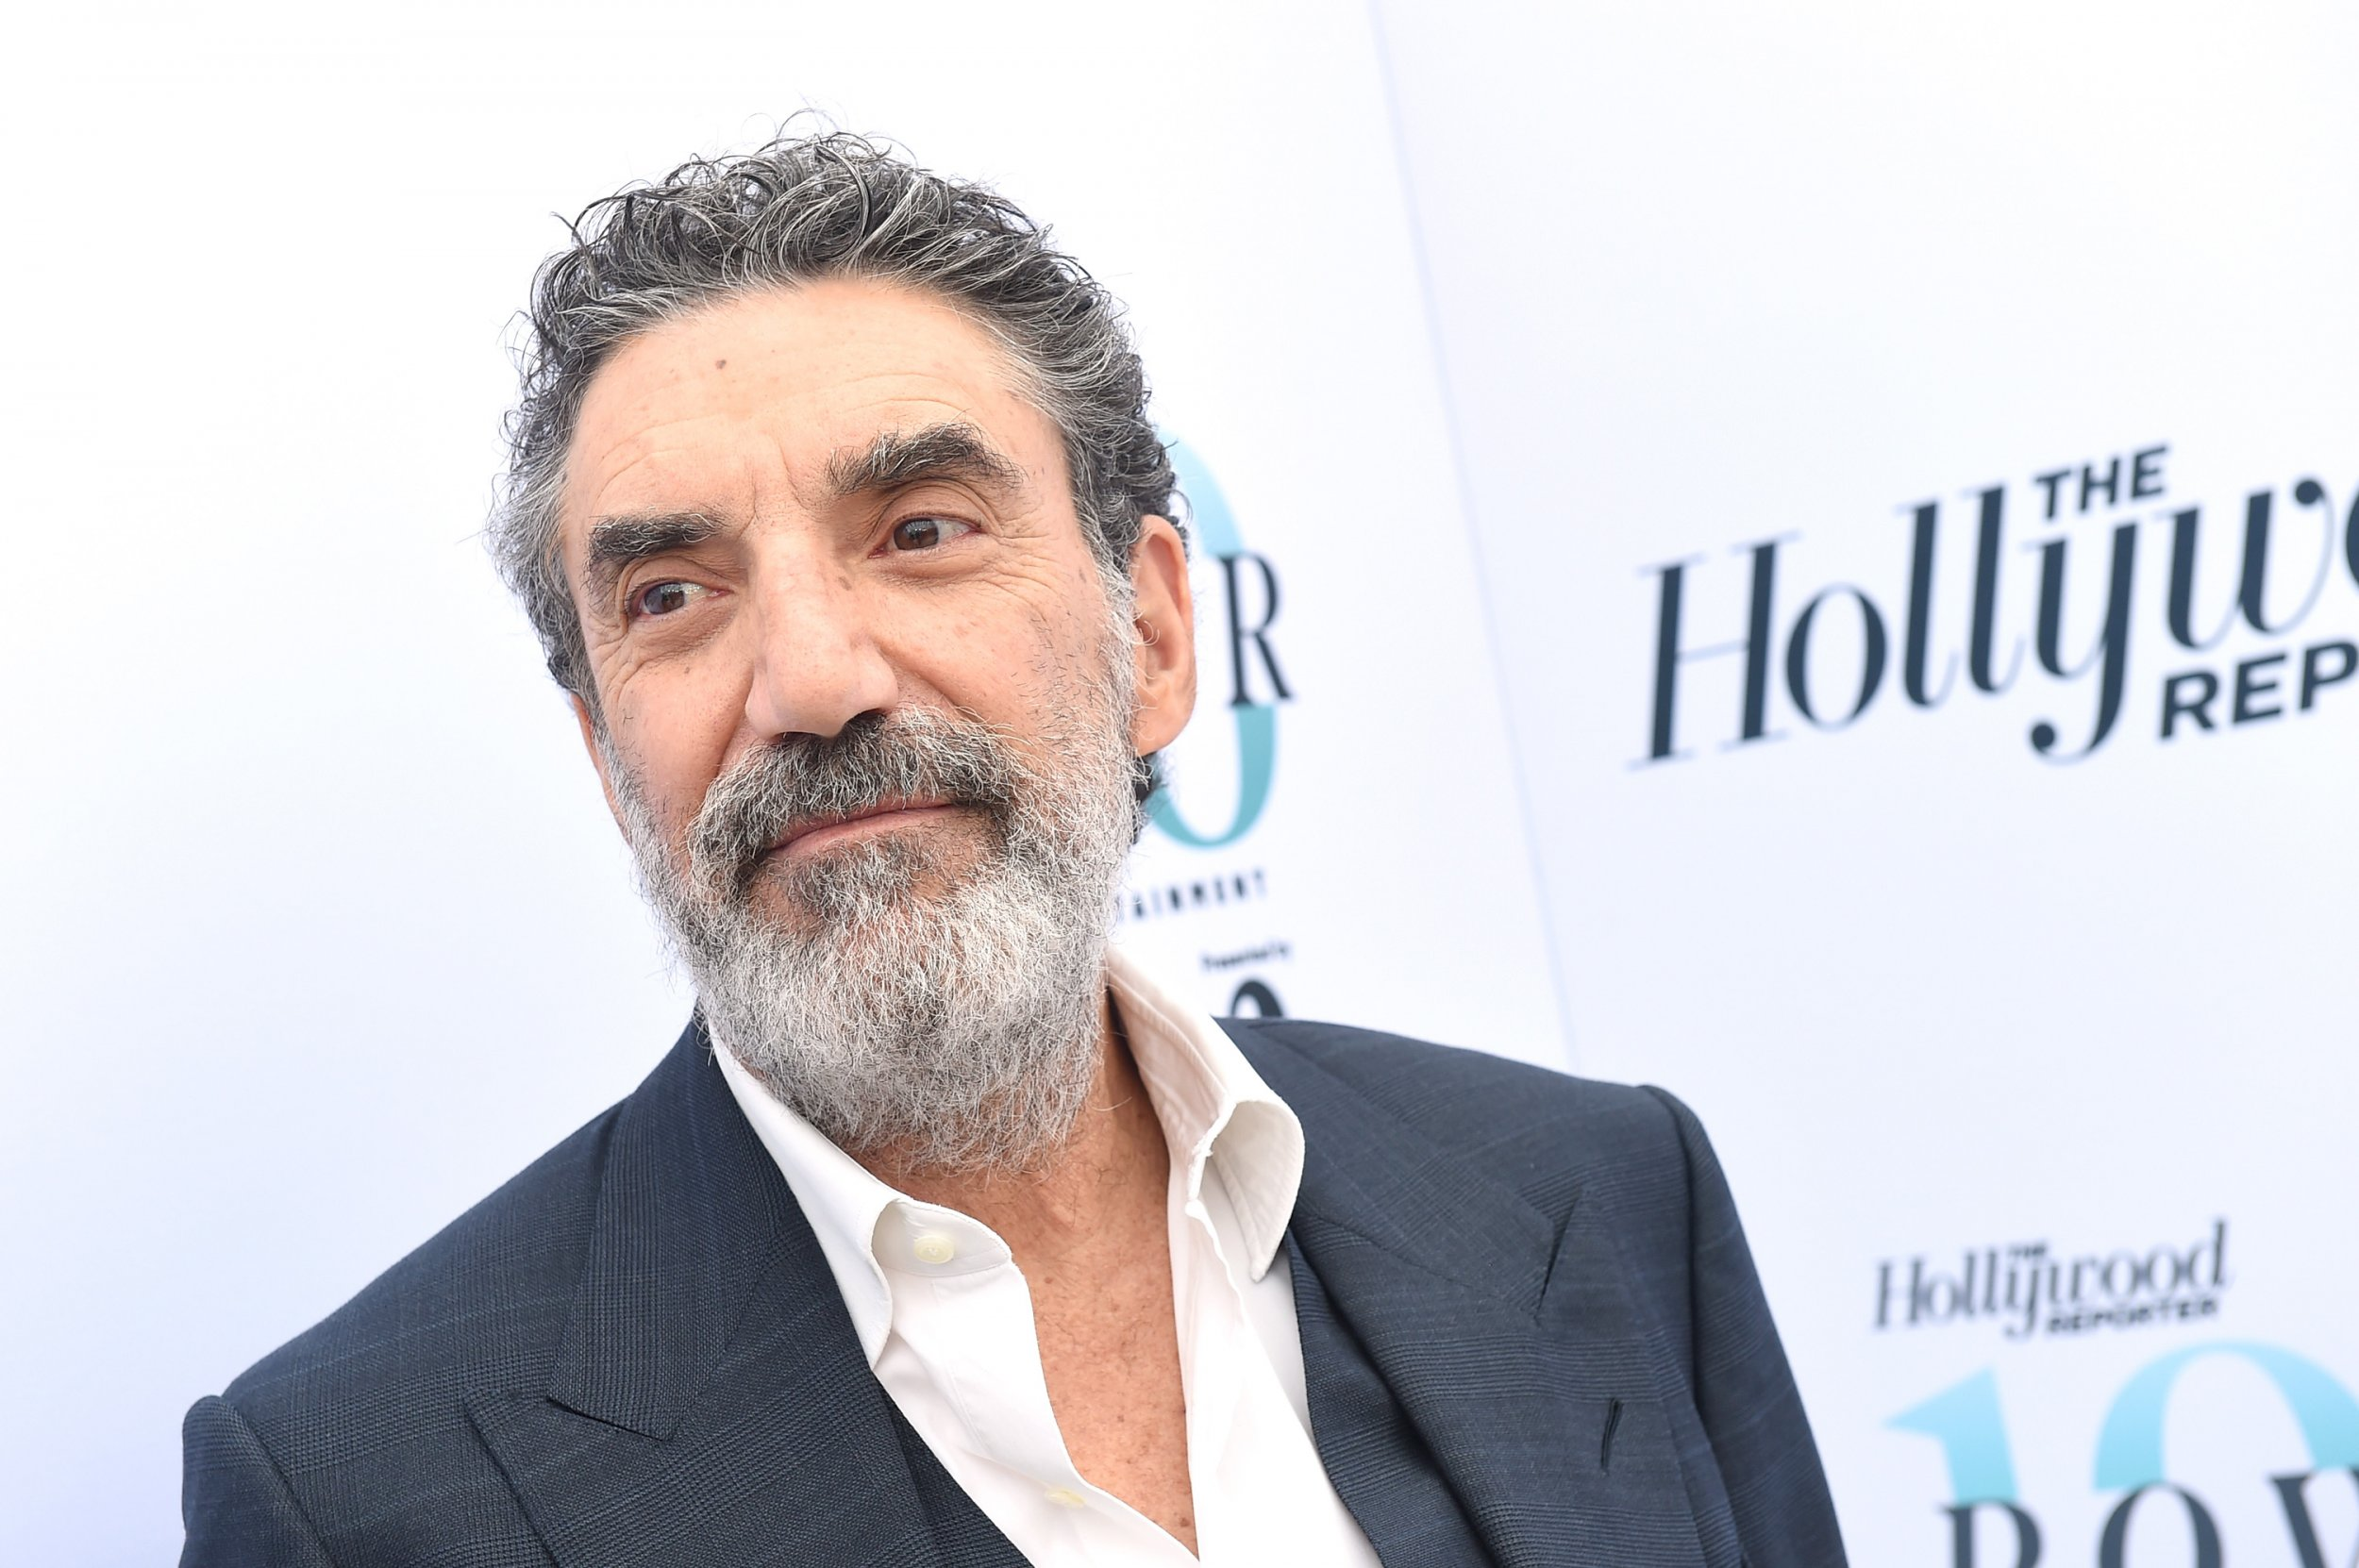 Bazinga Big Bang Theory Creator Chuck Lorre Takes A Shot At Donald Trump In Latest Episode